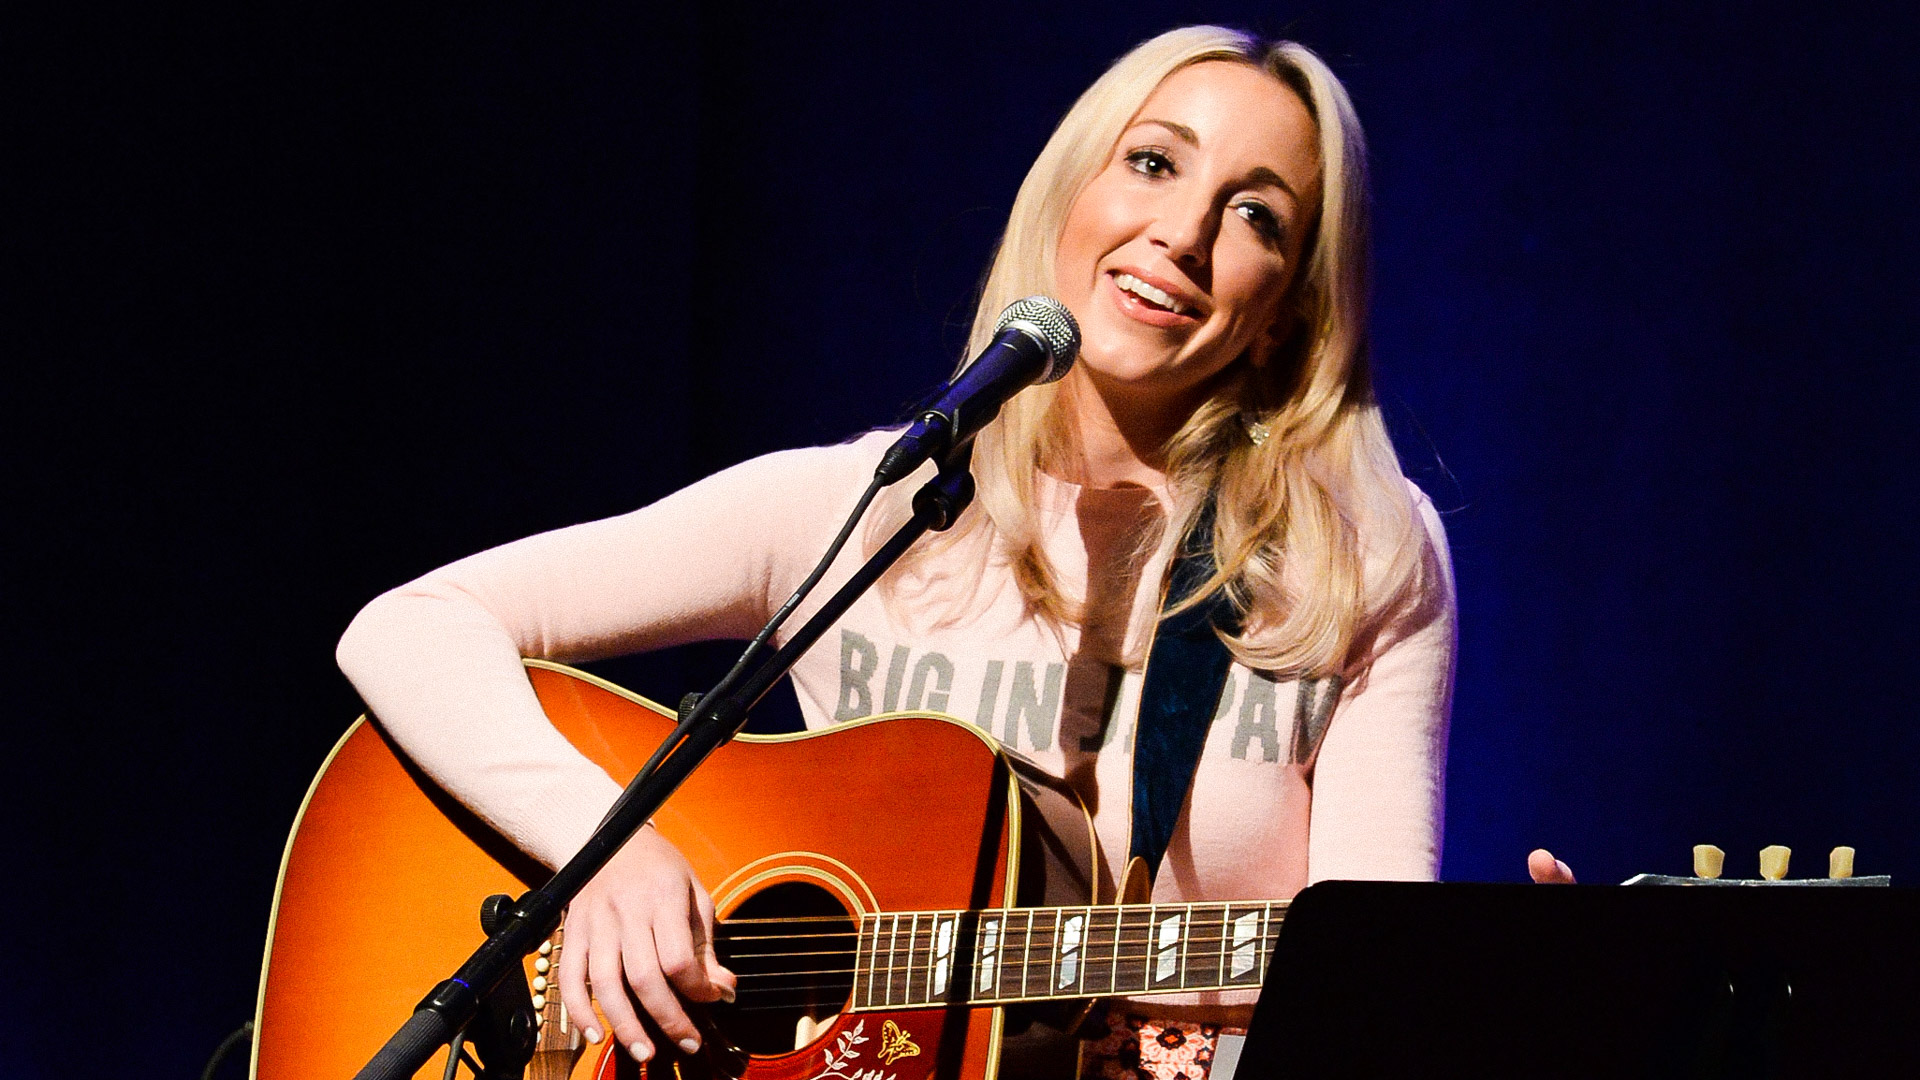 NASHVILLE, TN - MAY 17:  Ashley Monroe performs during the Country Music Hall Of Fame & Museum Presents Songwriter Session: Ashley Monroe at Country Music Hall of Fame and Museum on May 17, 2014 in Nashville, Tennessee.  (Photo by Rick Diamond/Getty Images for Country Music Hall Of Fame & Museum)